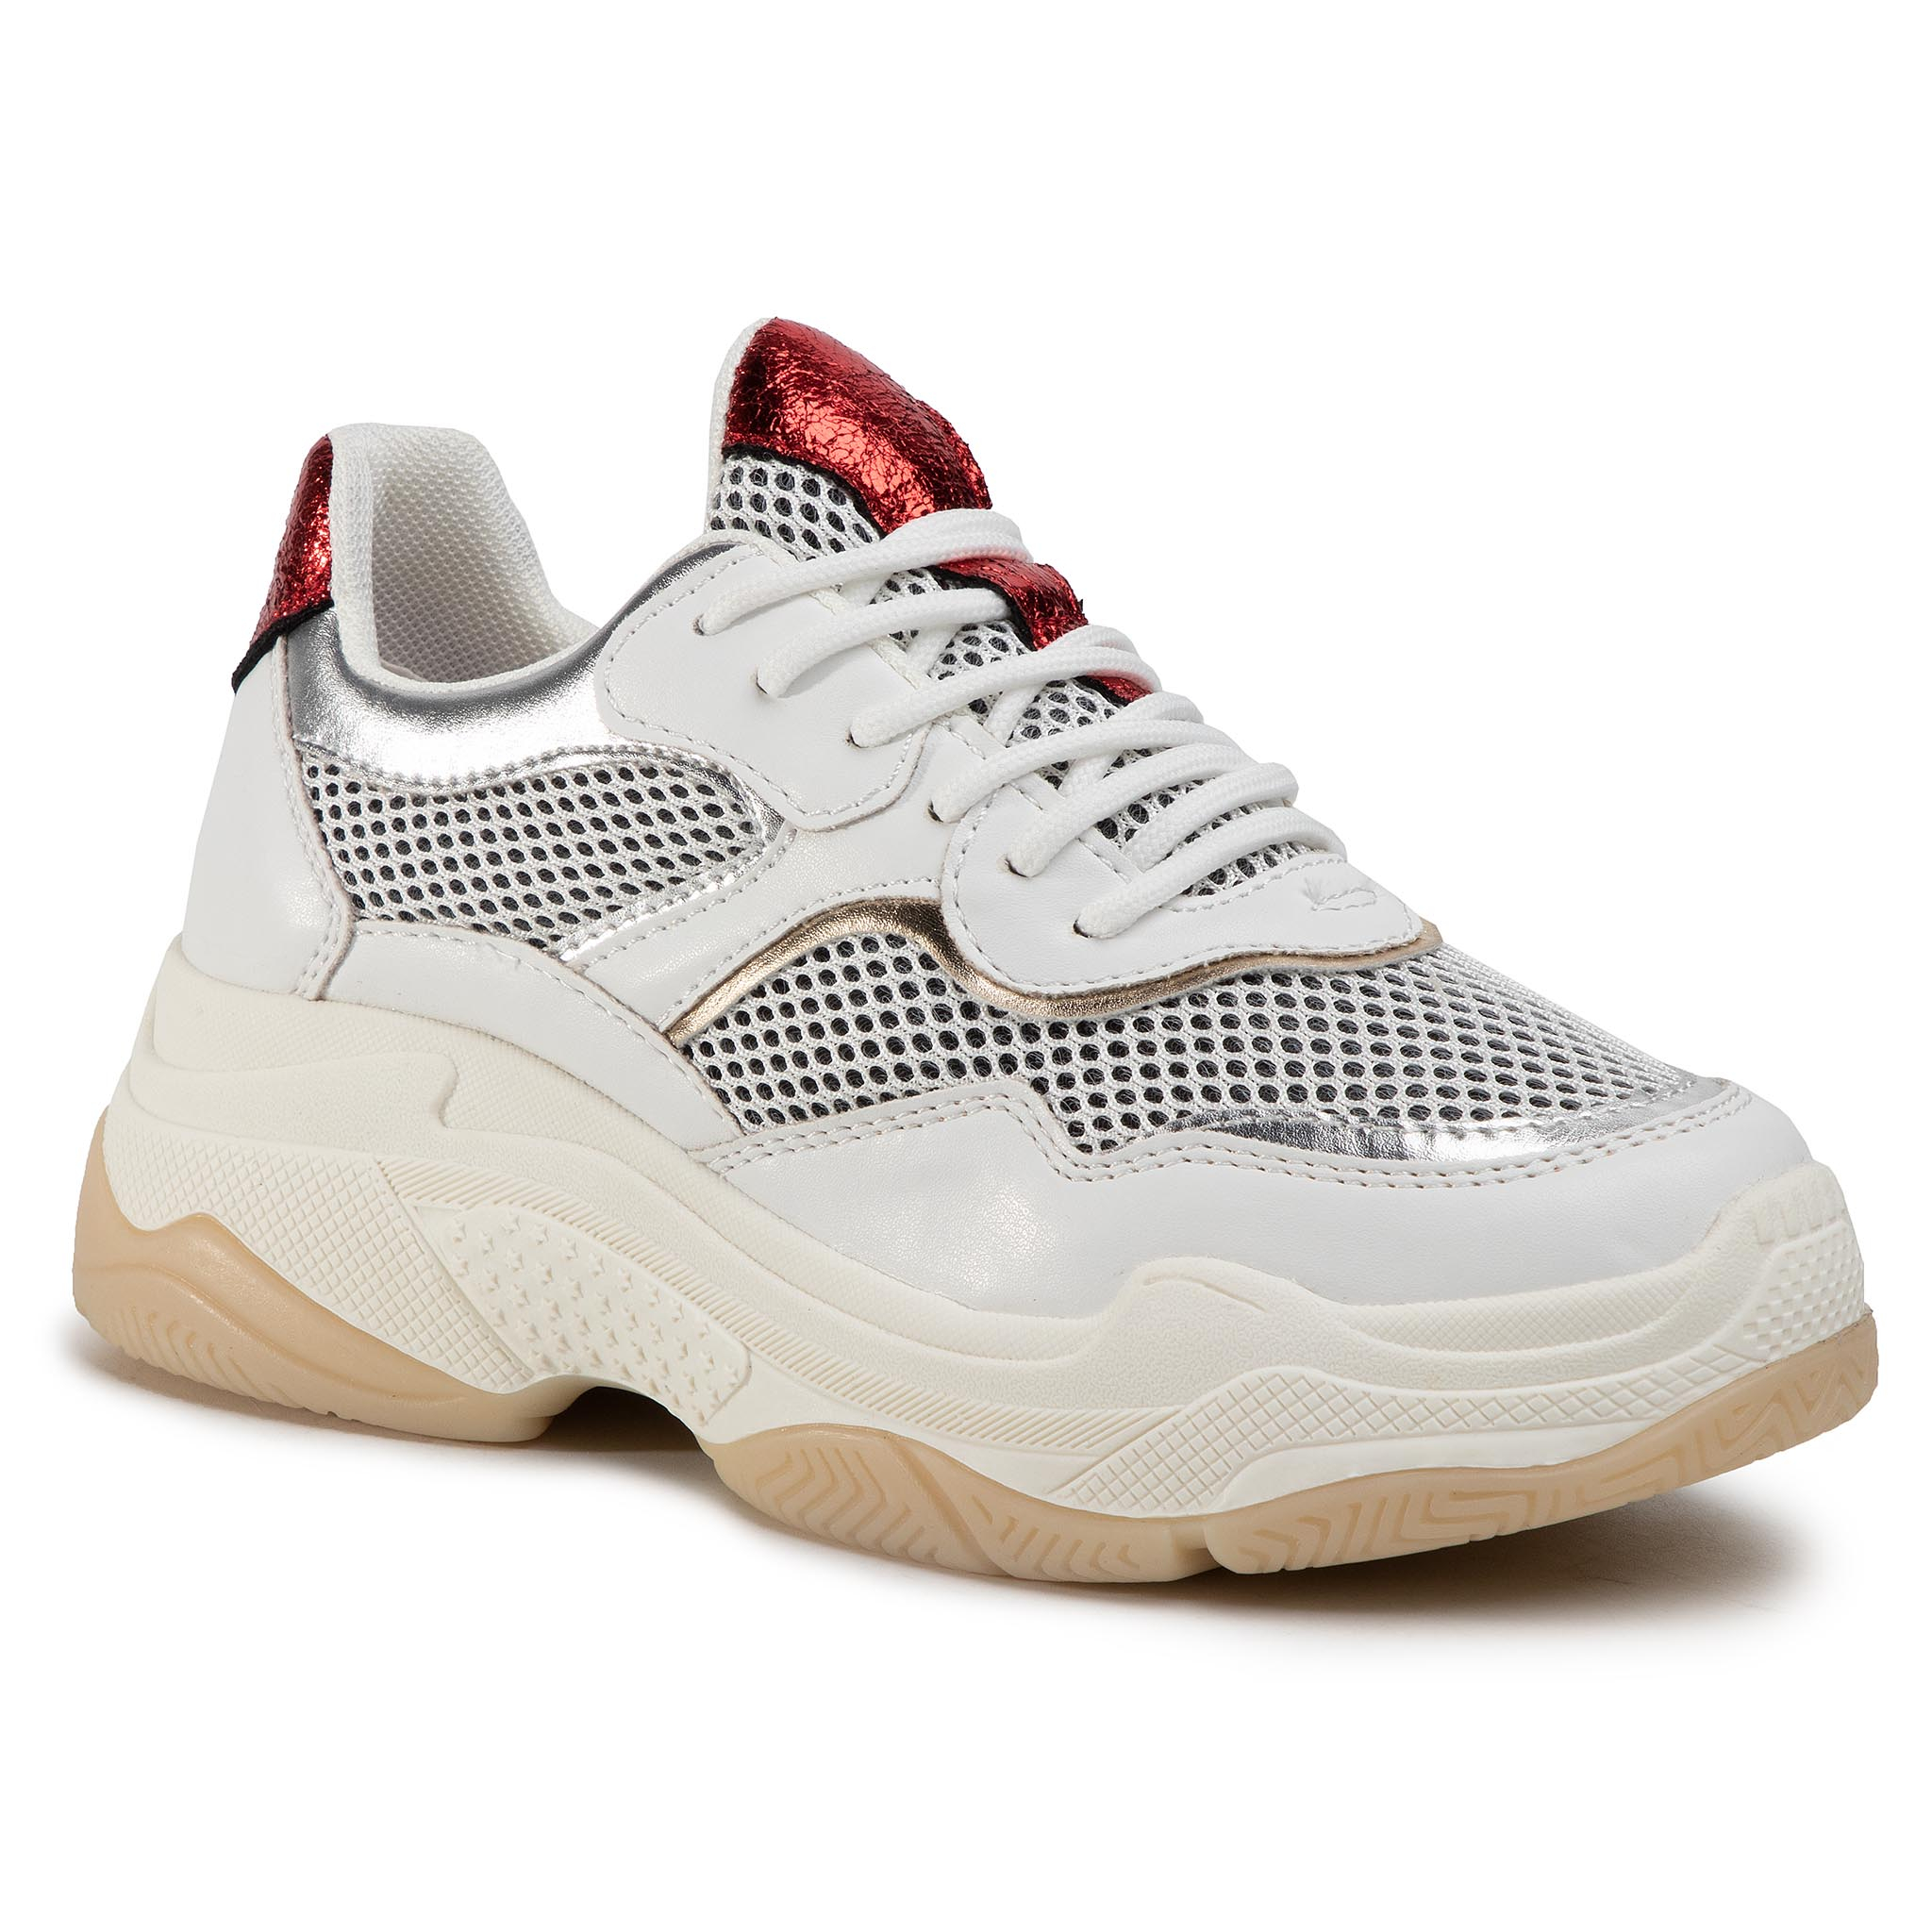 Image of Sneakers S.OLIVER - 5-23635-34 White Comb 110